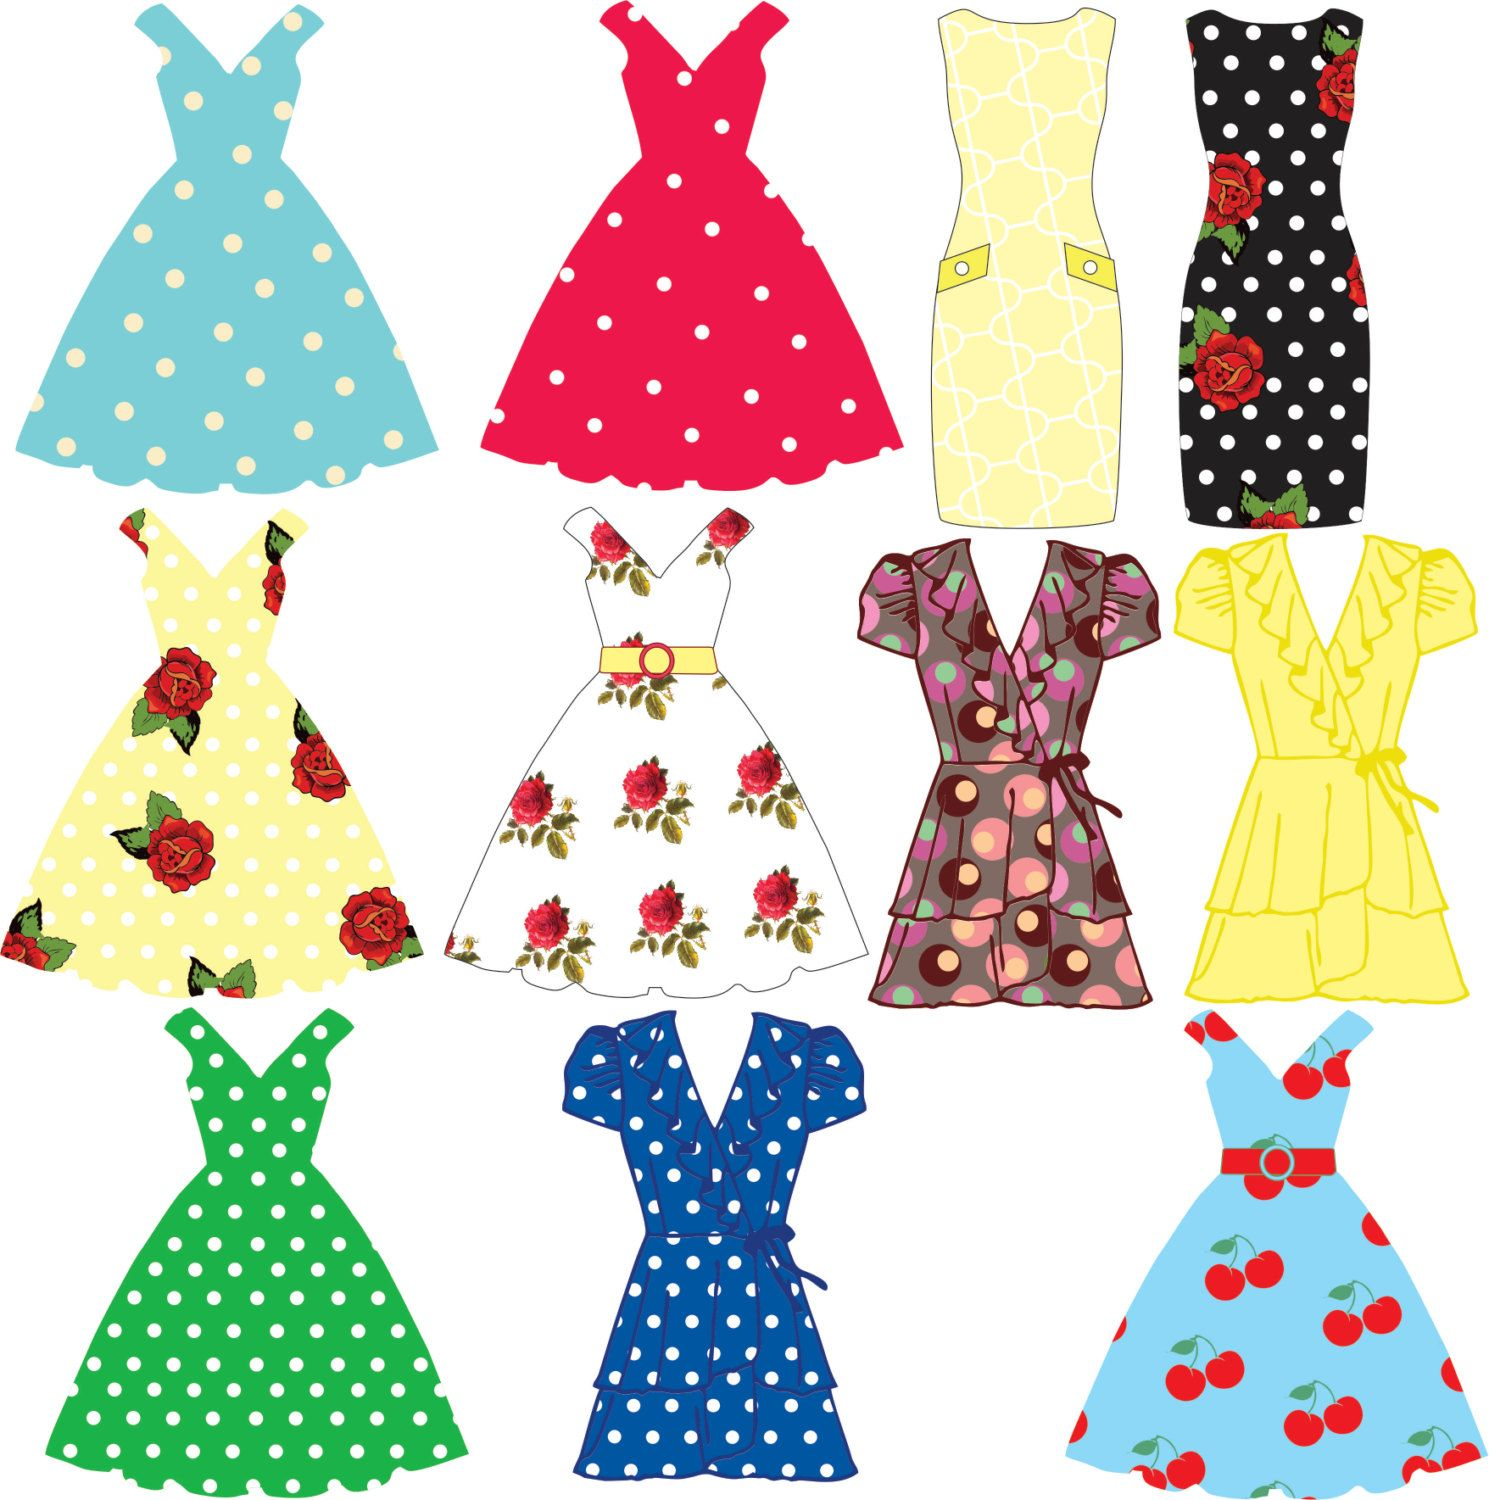 Dress clipart party dress. Tea clip art dresses